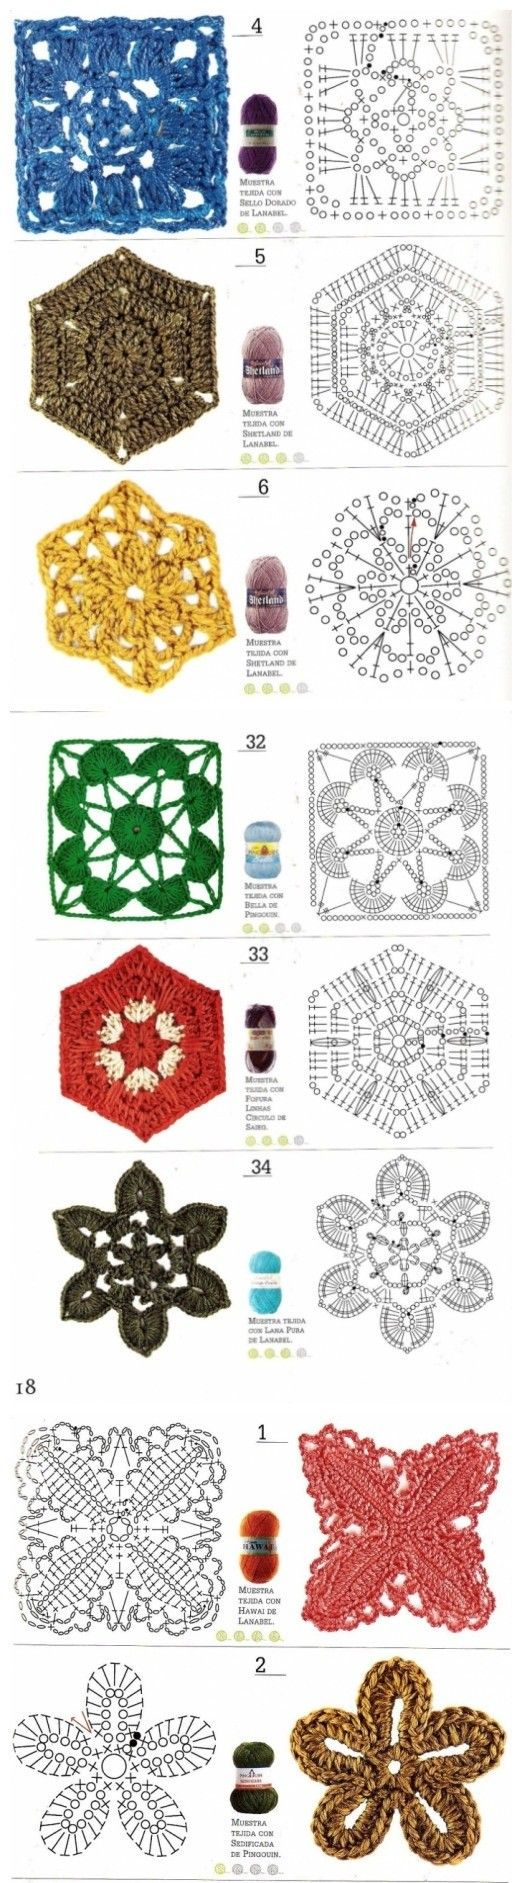 {Crochet} small ornaments, coasters crochet tutorial are so cute.